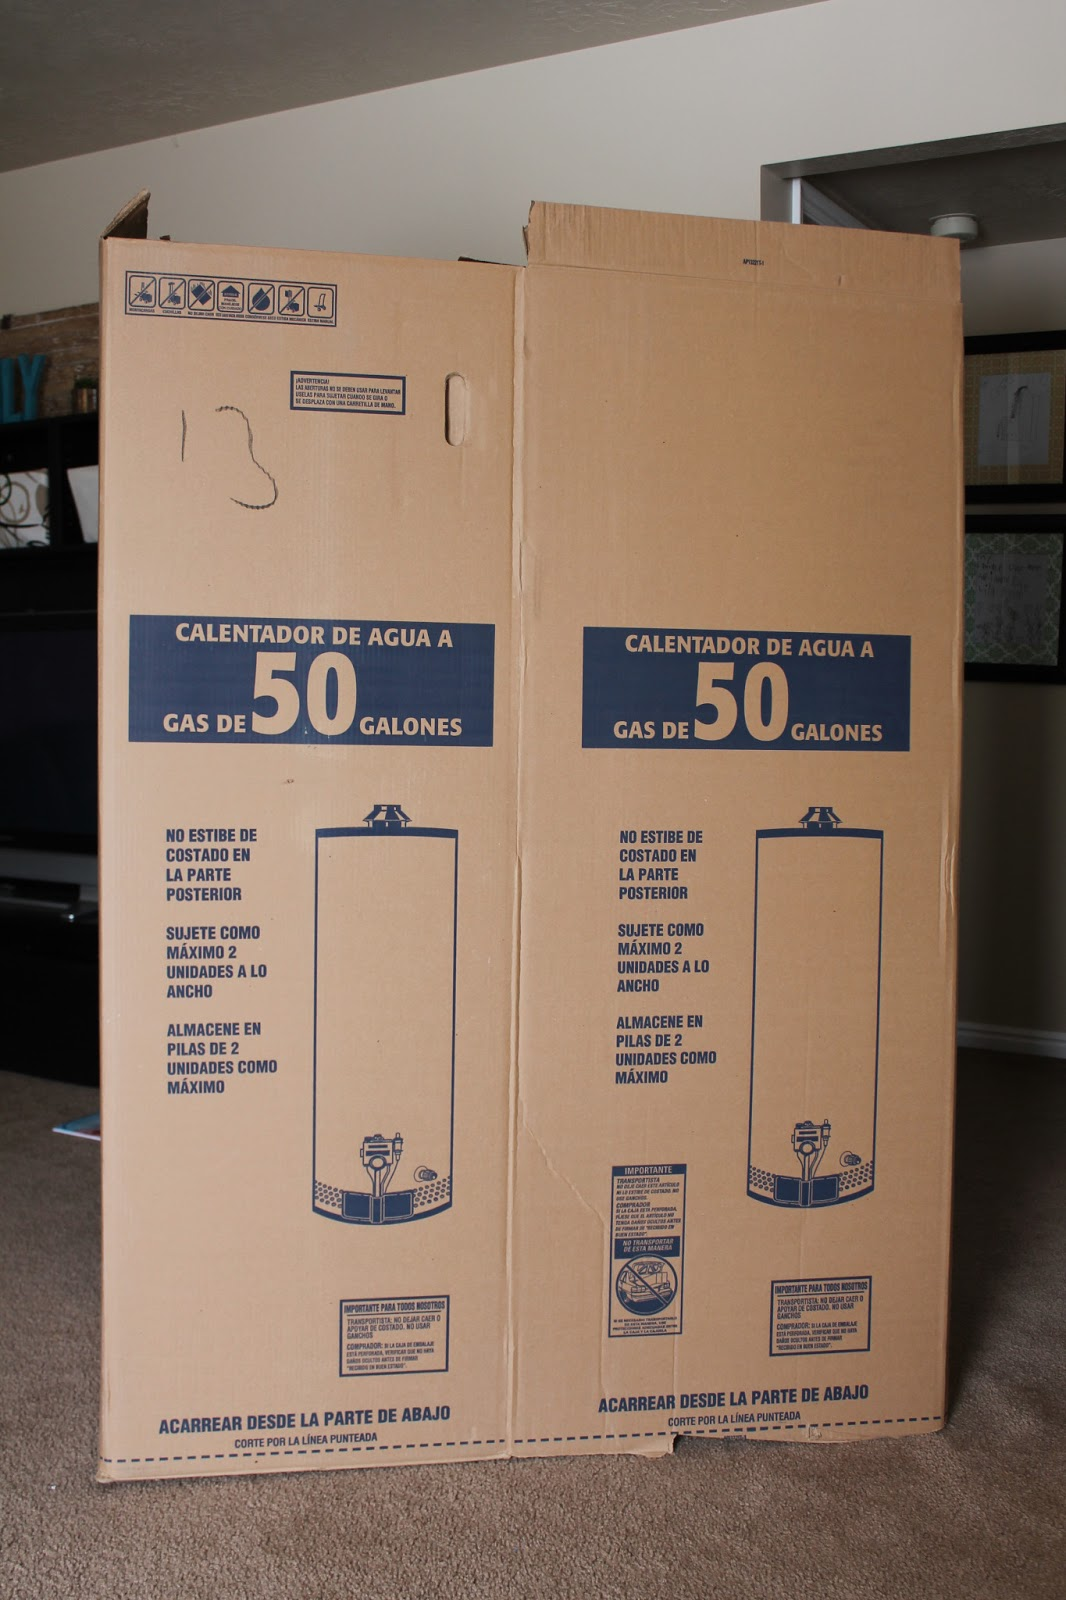 Water Heater Box Diy Photo Backdrop Find It Make It Love It